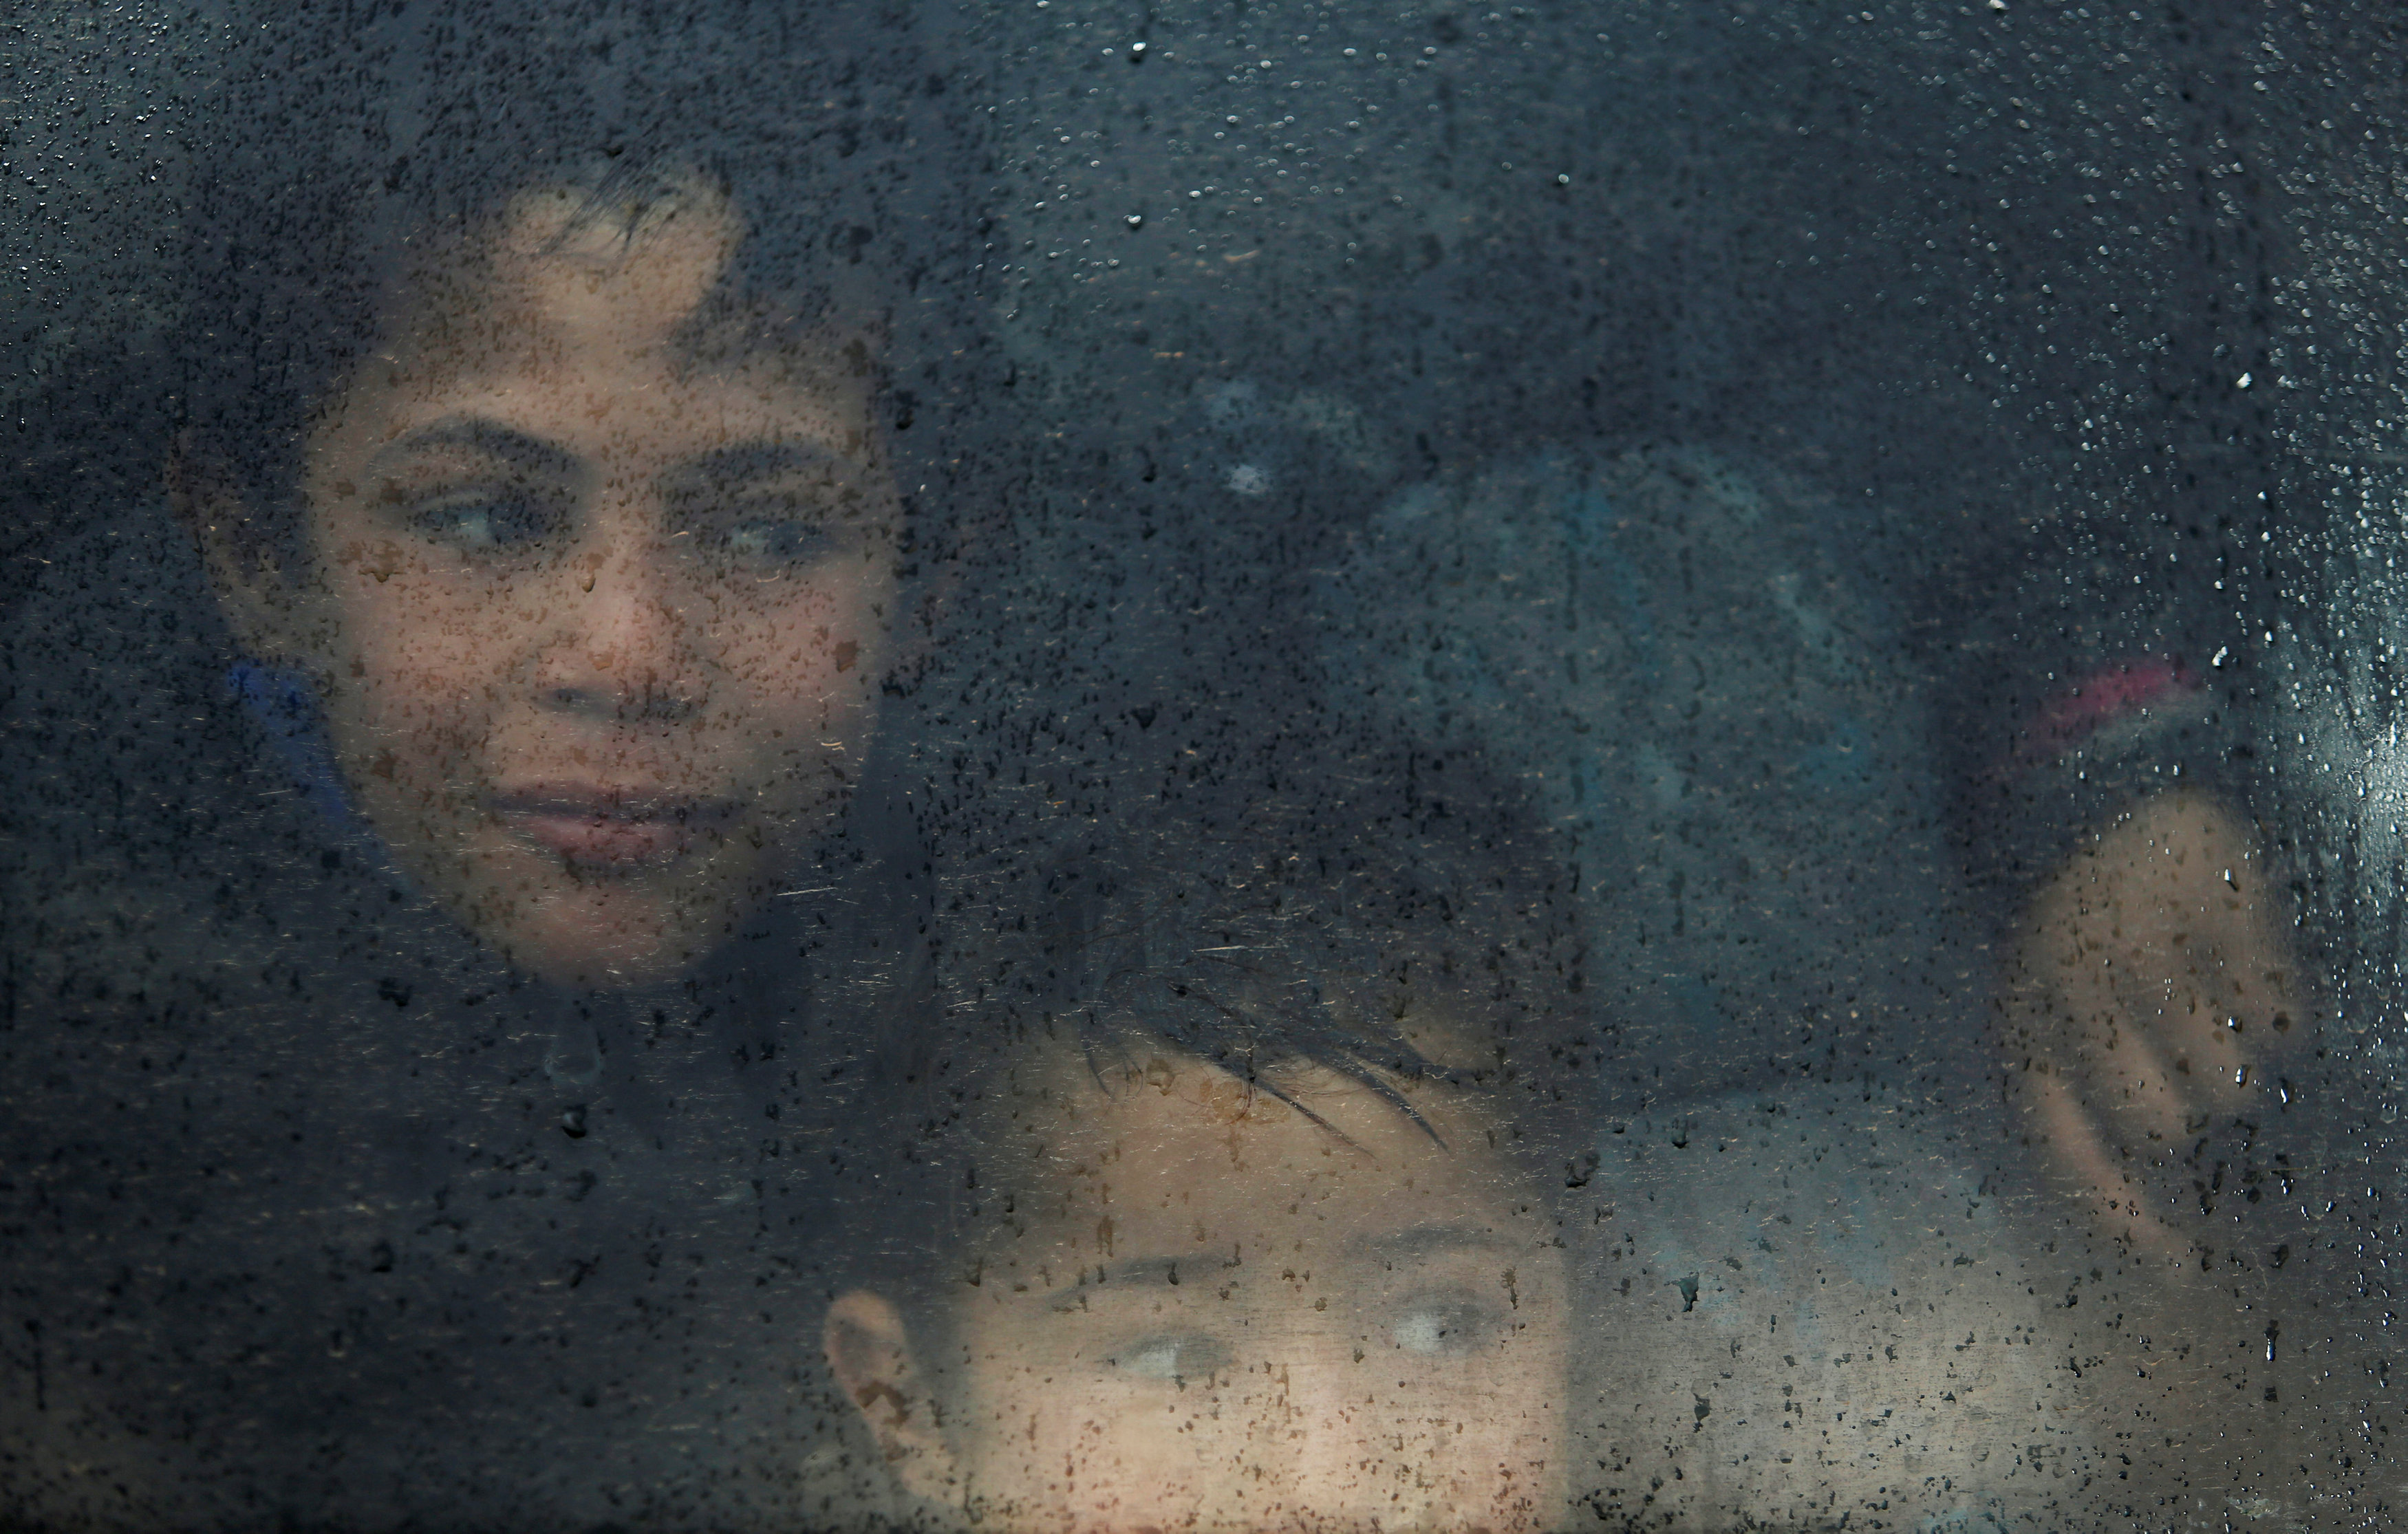 Displaced Iraqi children look out of a bus window as they wait to get into Hamam al-Alil, camp on a rainy day, south of Mosul, Iraq. PHOTO: REUTER